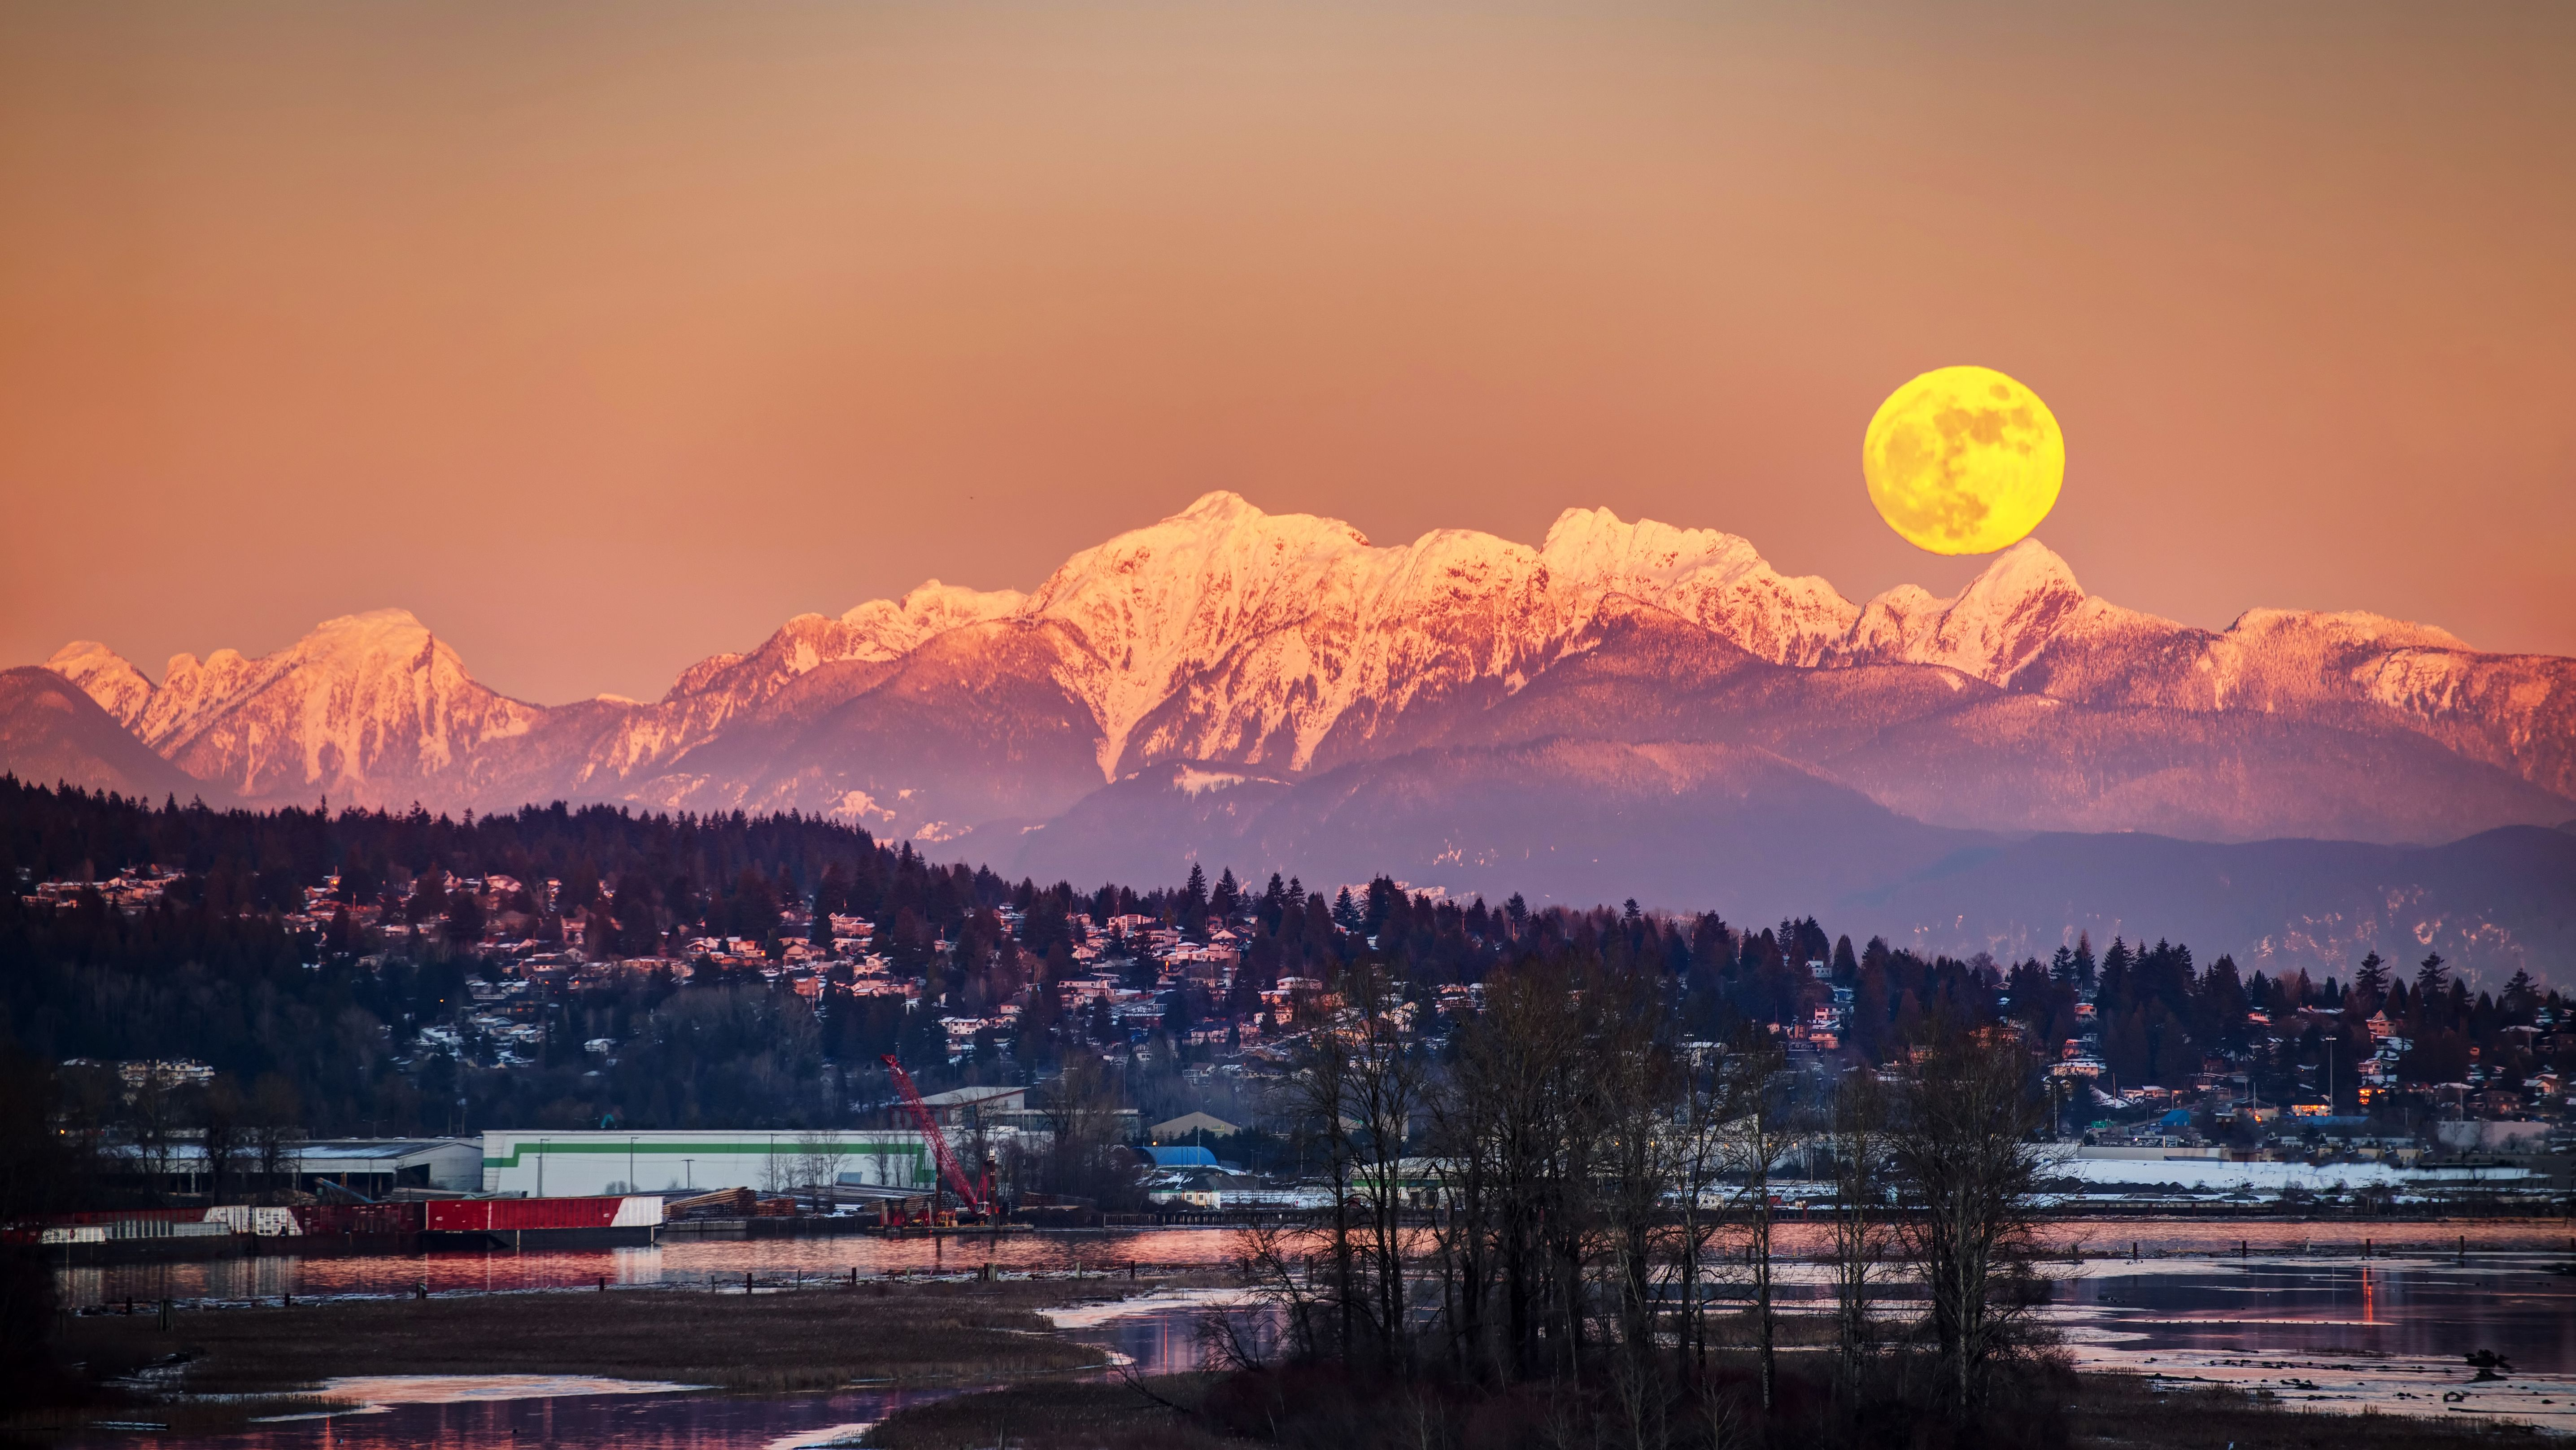 A Snow Moon—the Year's Brightest Supermoon—Will Be Visible Next Week - Mental Floss